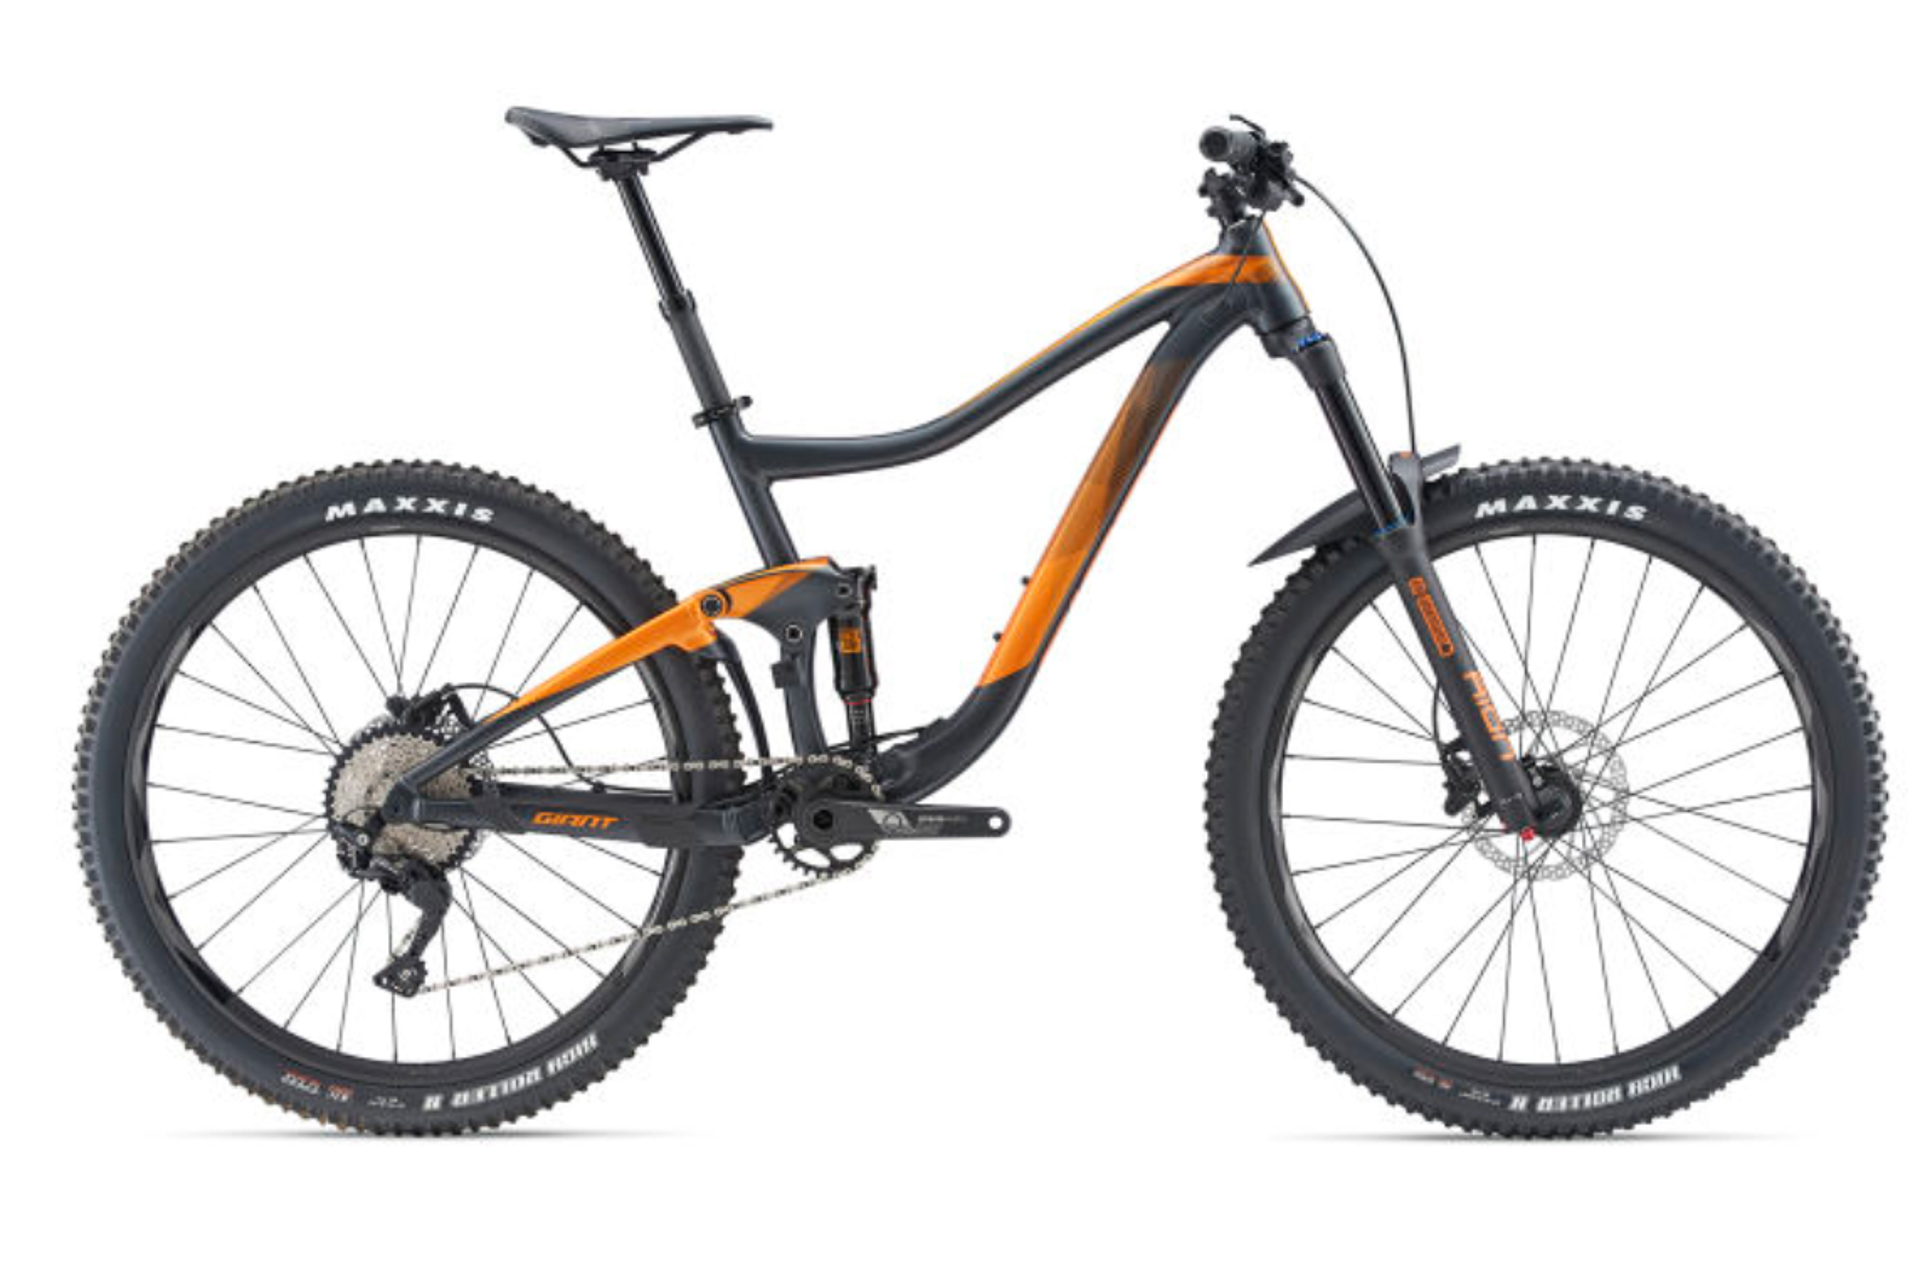 180aeb0a794 The Best Mountain Bikes Under $2,500 | Bike Magazine